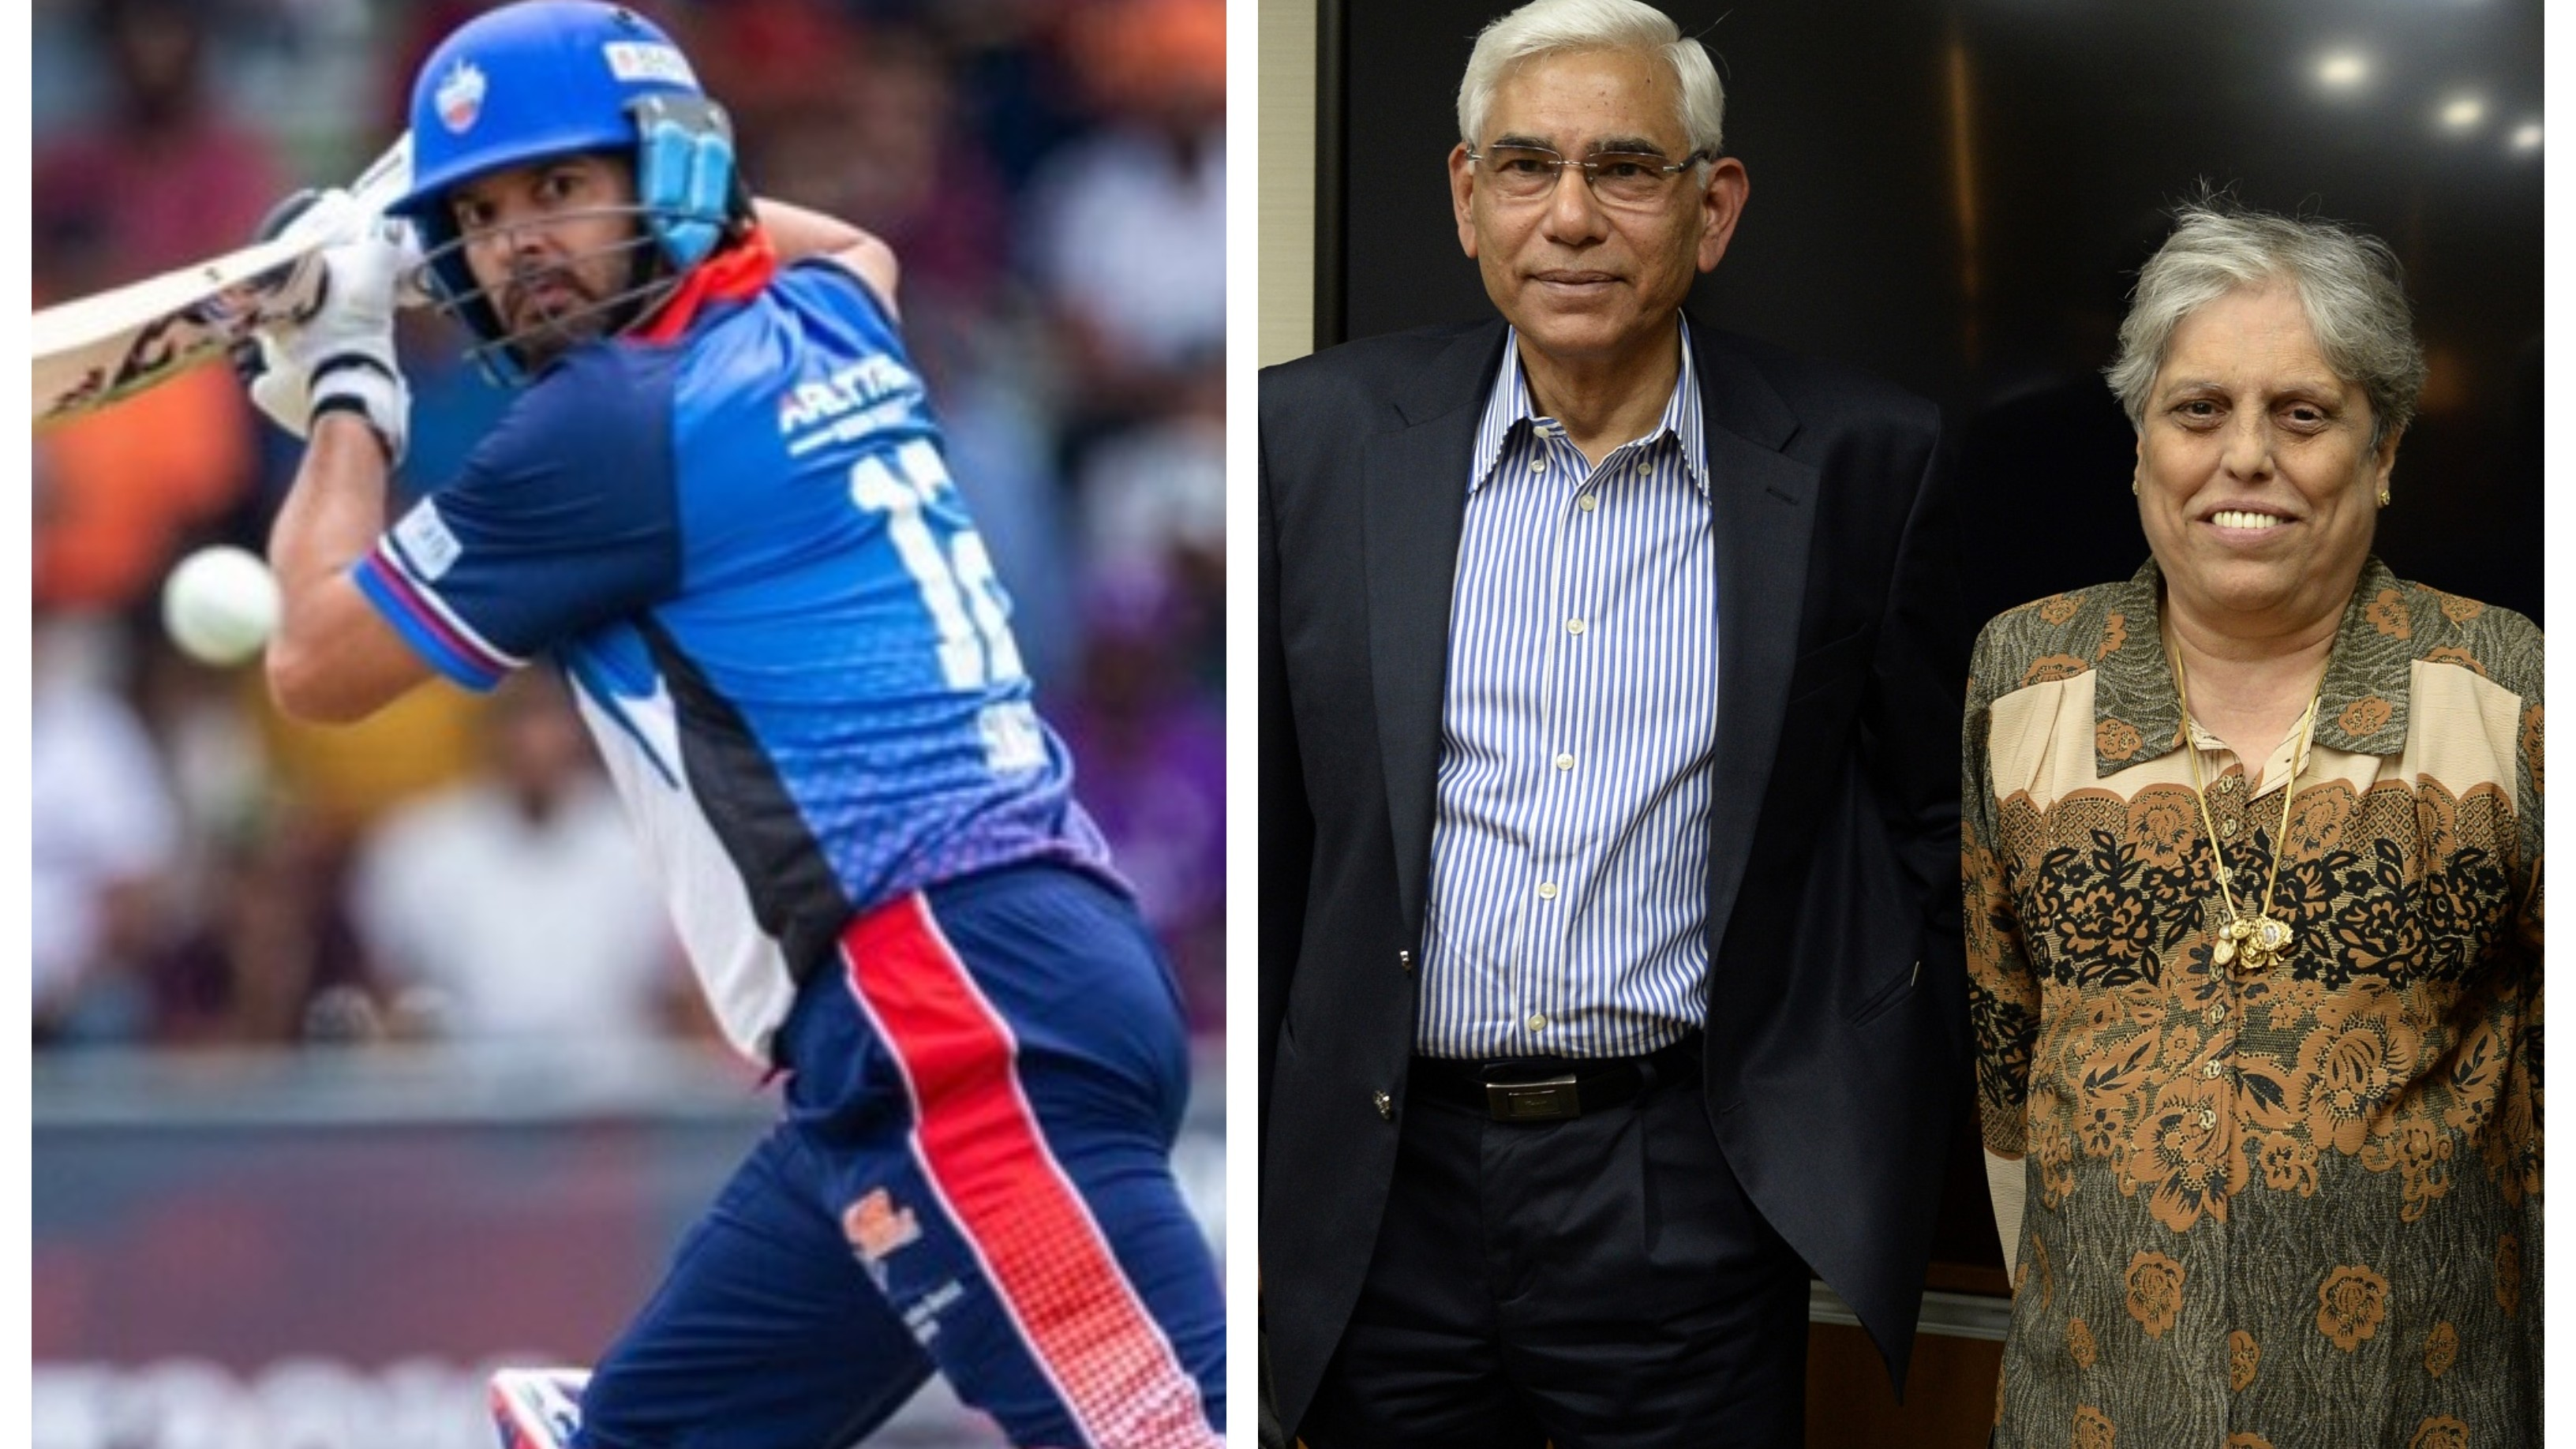 CoA calls Yuvraj Singh's case an exception, says no NOCs for Indians to play T20 leagues